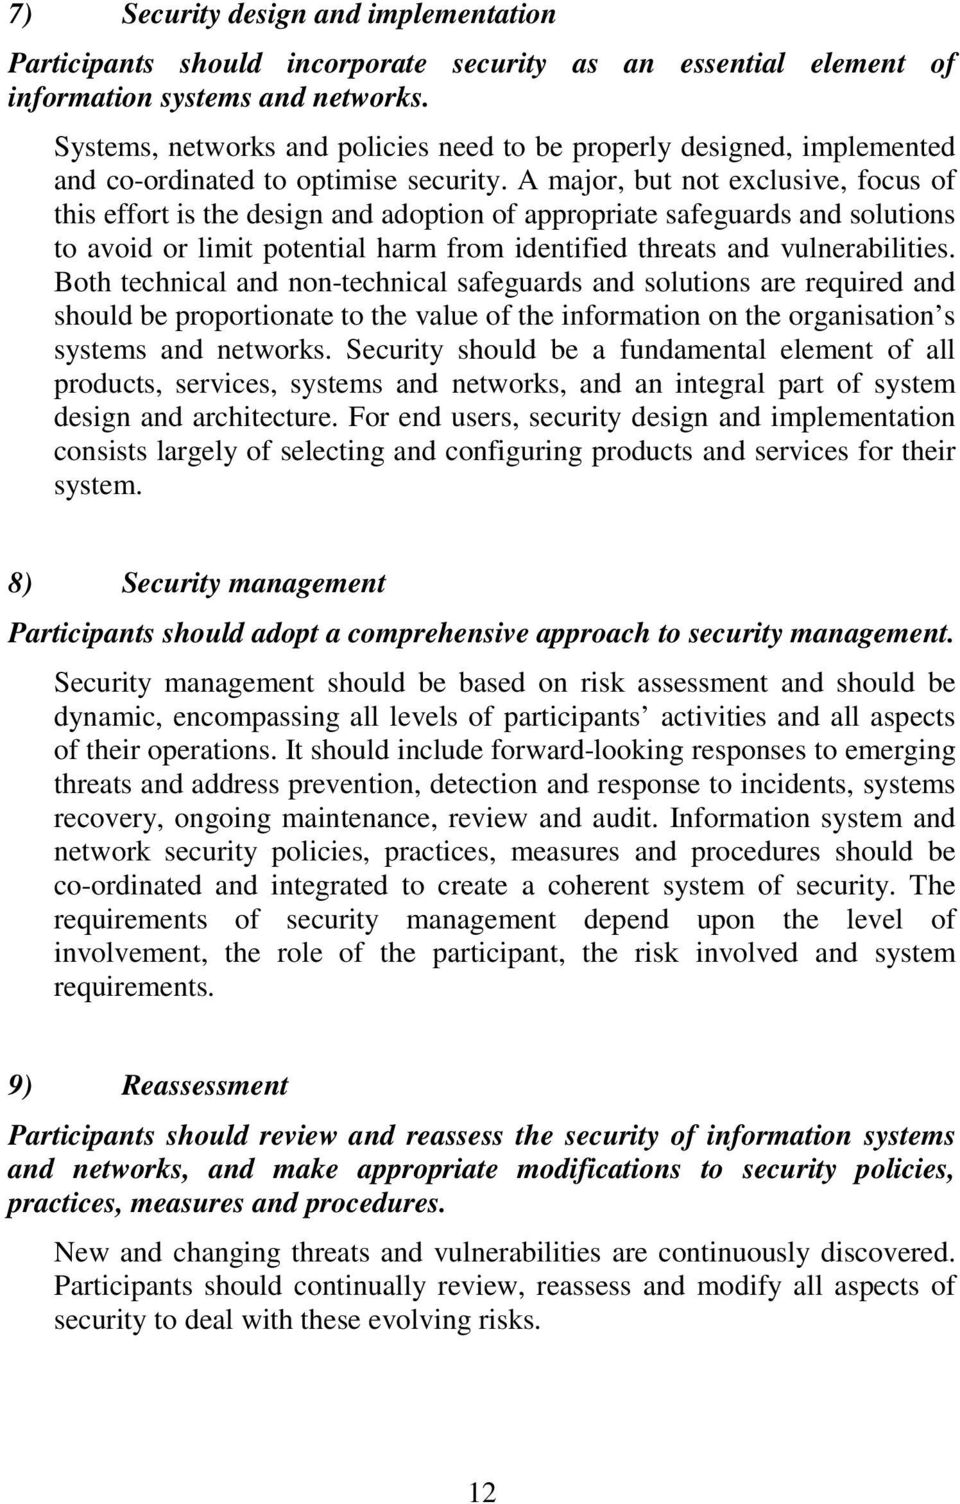 A major, but not exclusive, focus of this effort is the design and adoption of appropriate safeguards and solutions to avoid or limit potential harm from identified threats and vulnerabilities.